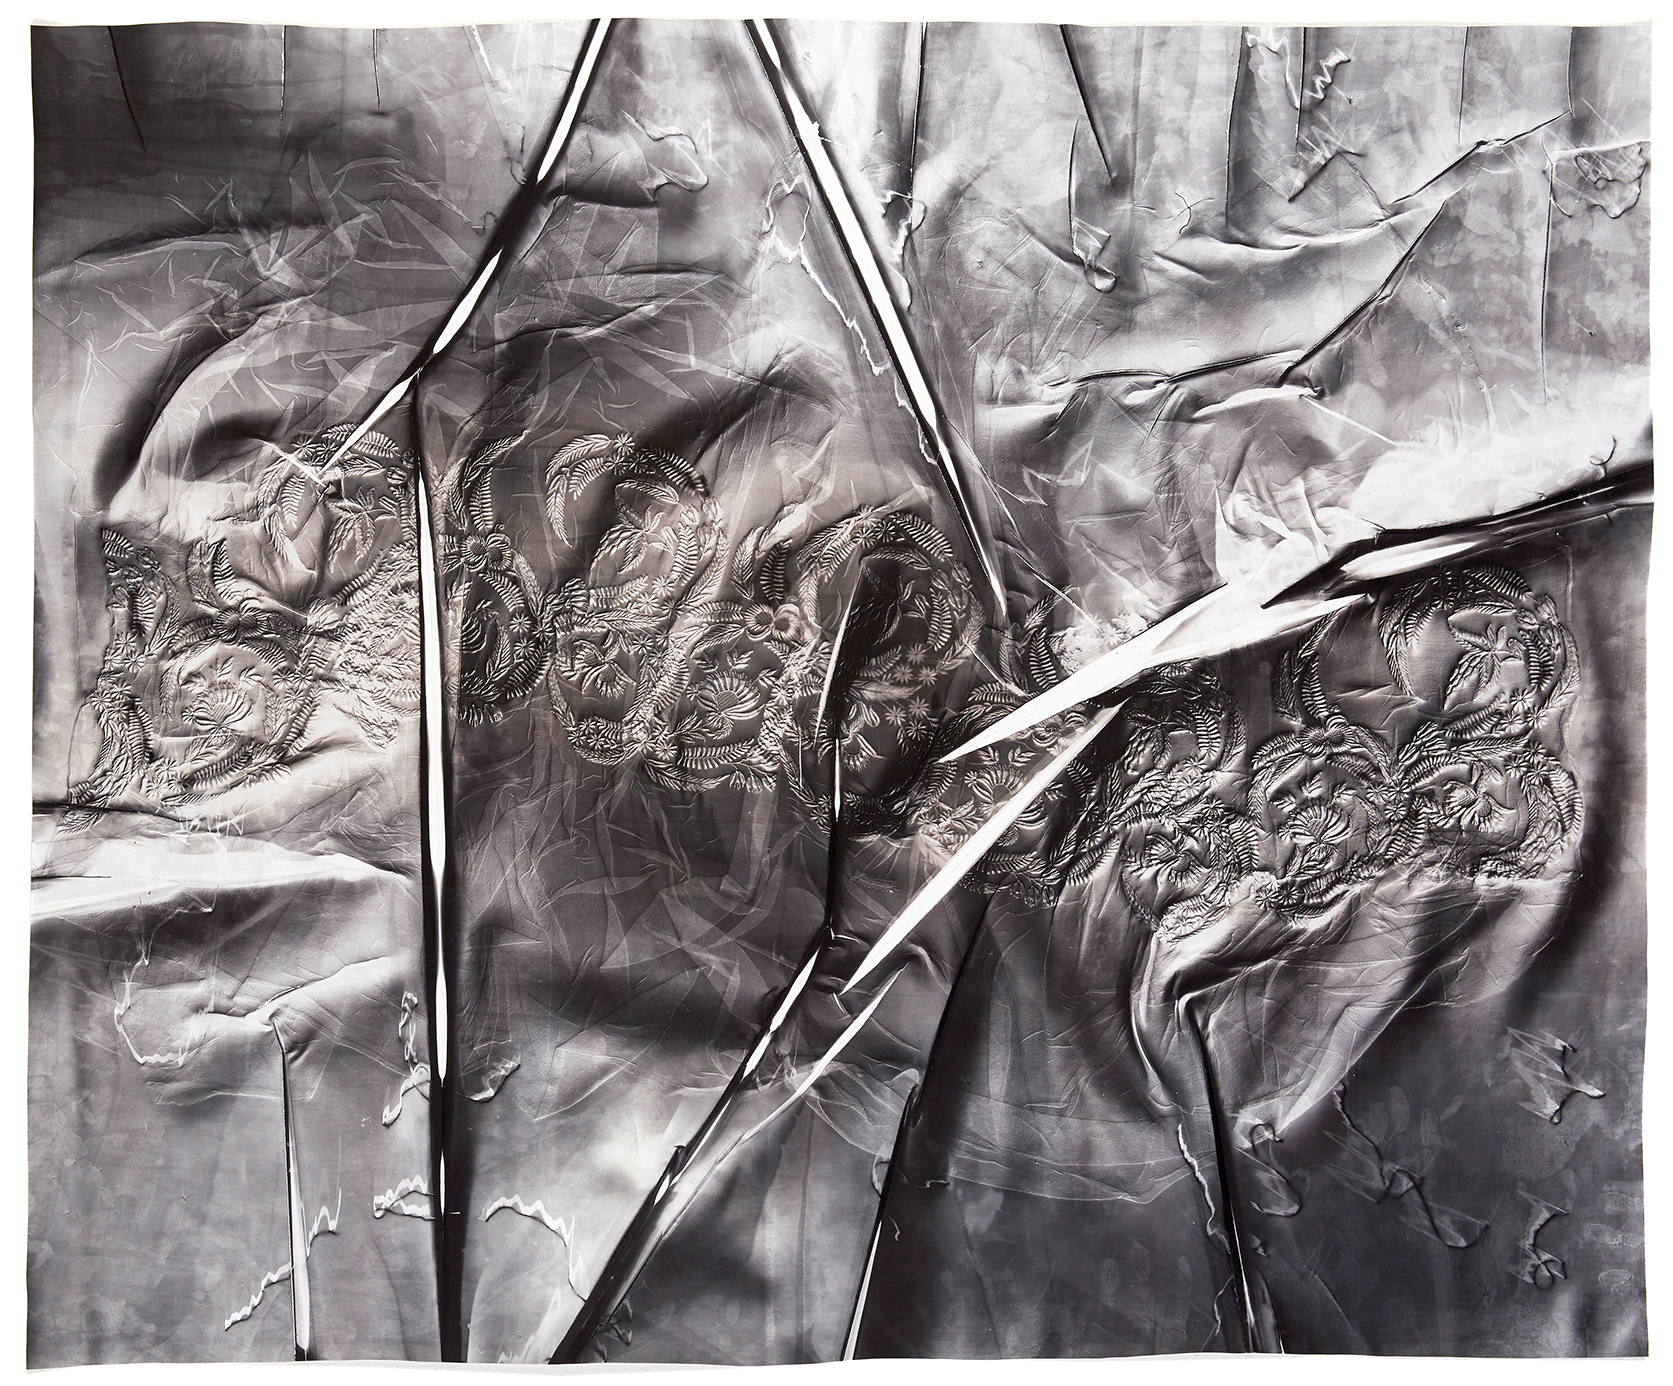 KLEA McKENNA  Life Hours (6),  2019 Photographic Relief. Unique Photogram on gelatin silver fiber paper toned with Sepia and Selenium. Impression of hand embroidery on a sheer muslin skirt fragment. England. Circa 1830 35.5 x 42.5 in; frame: 40 x 47 in